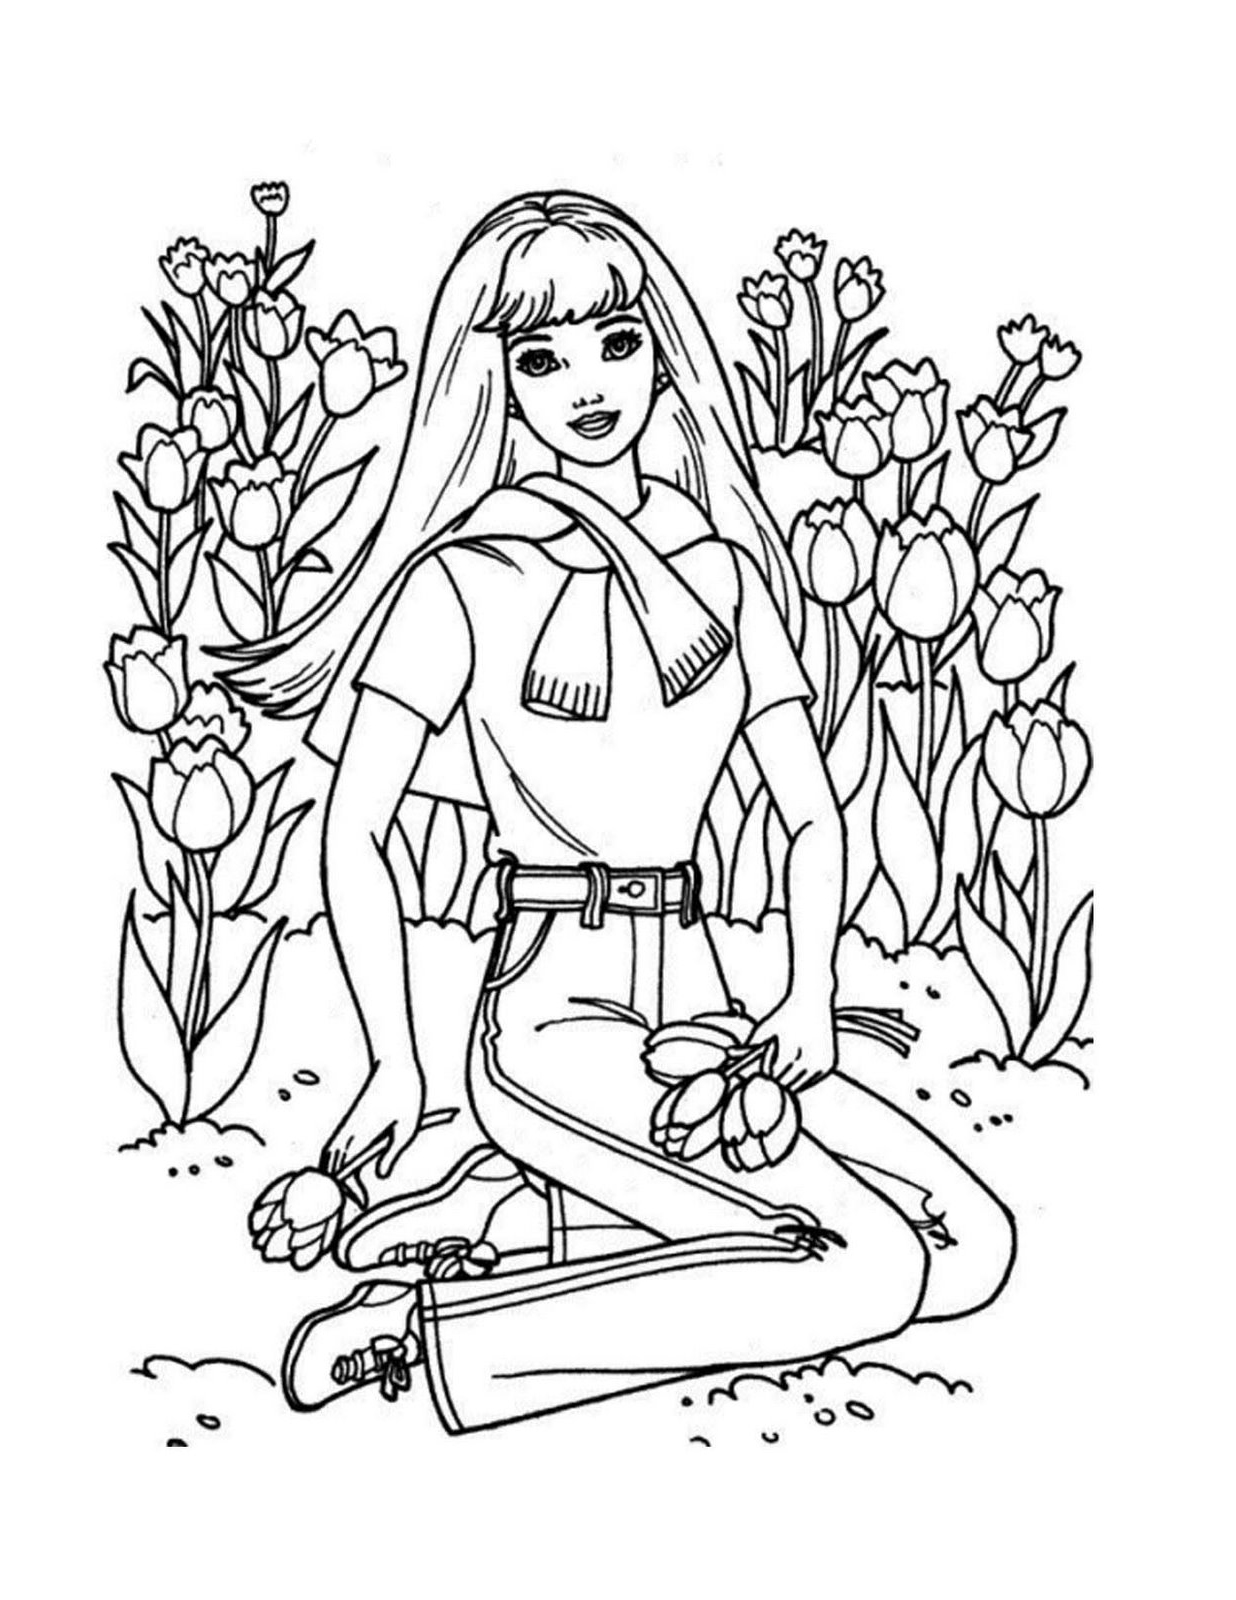 free barbie coloring pages barbie 33 coloringcolorcom barbie coloring pages free